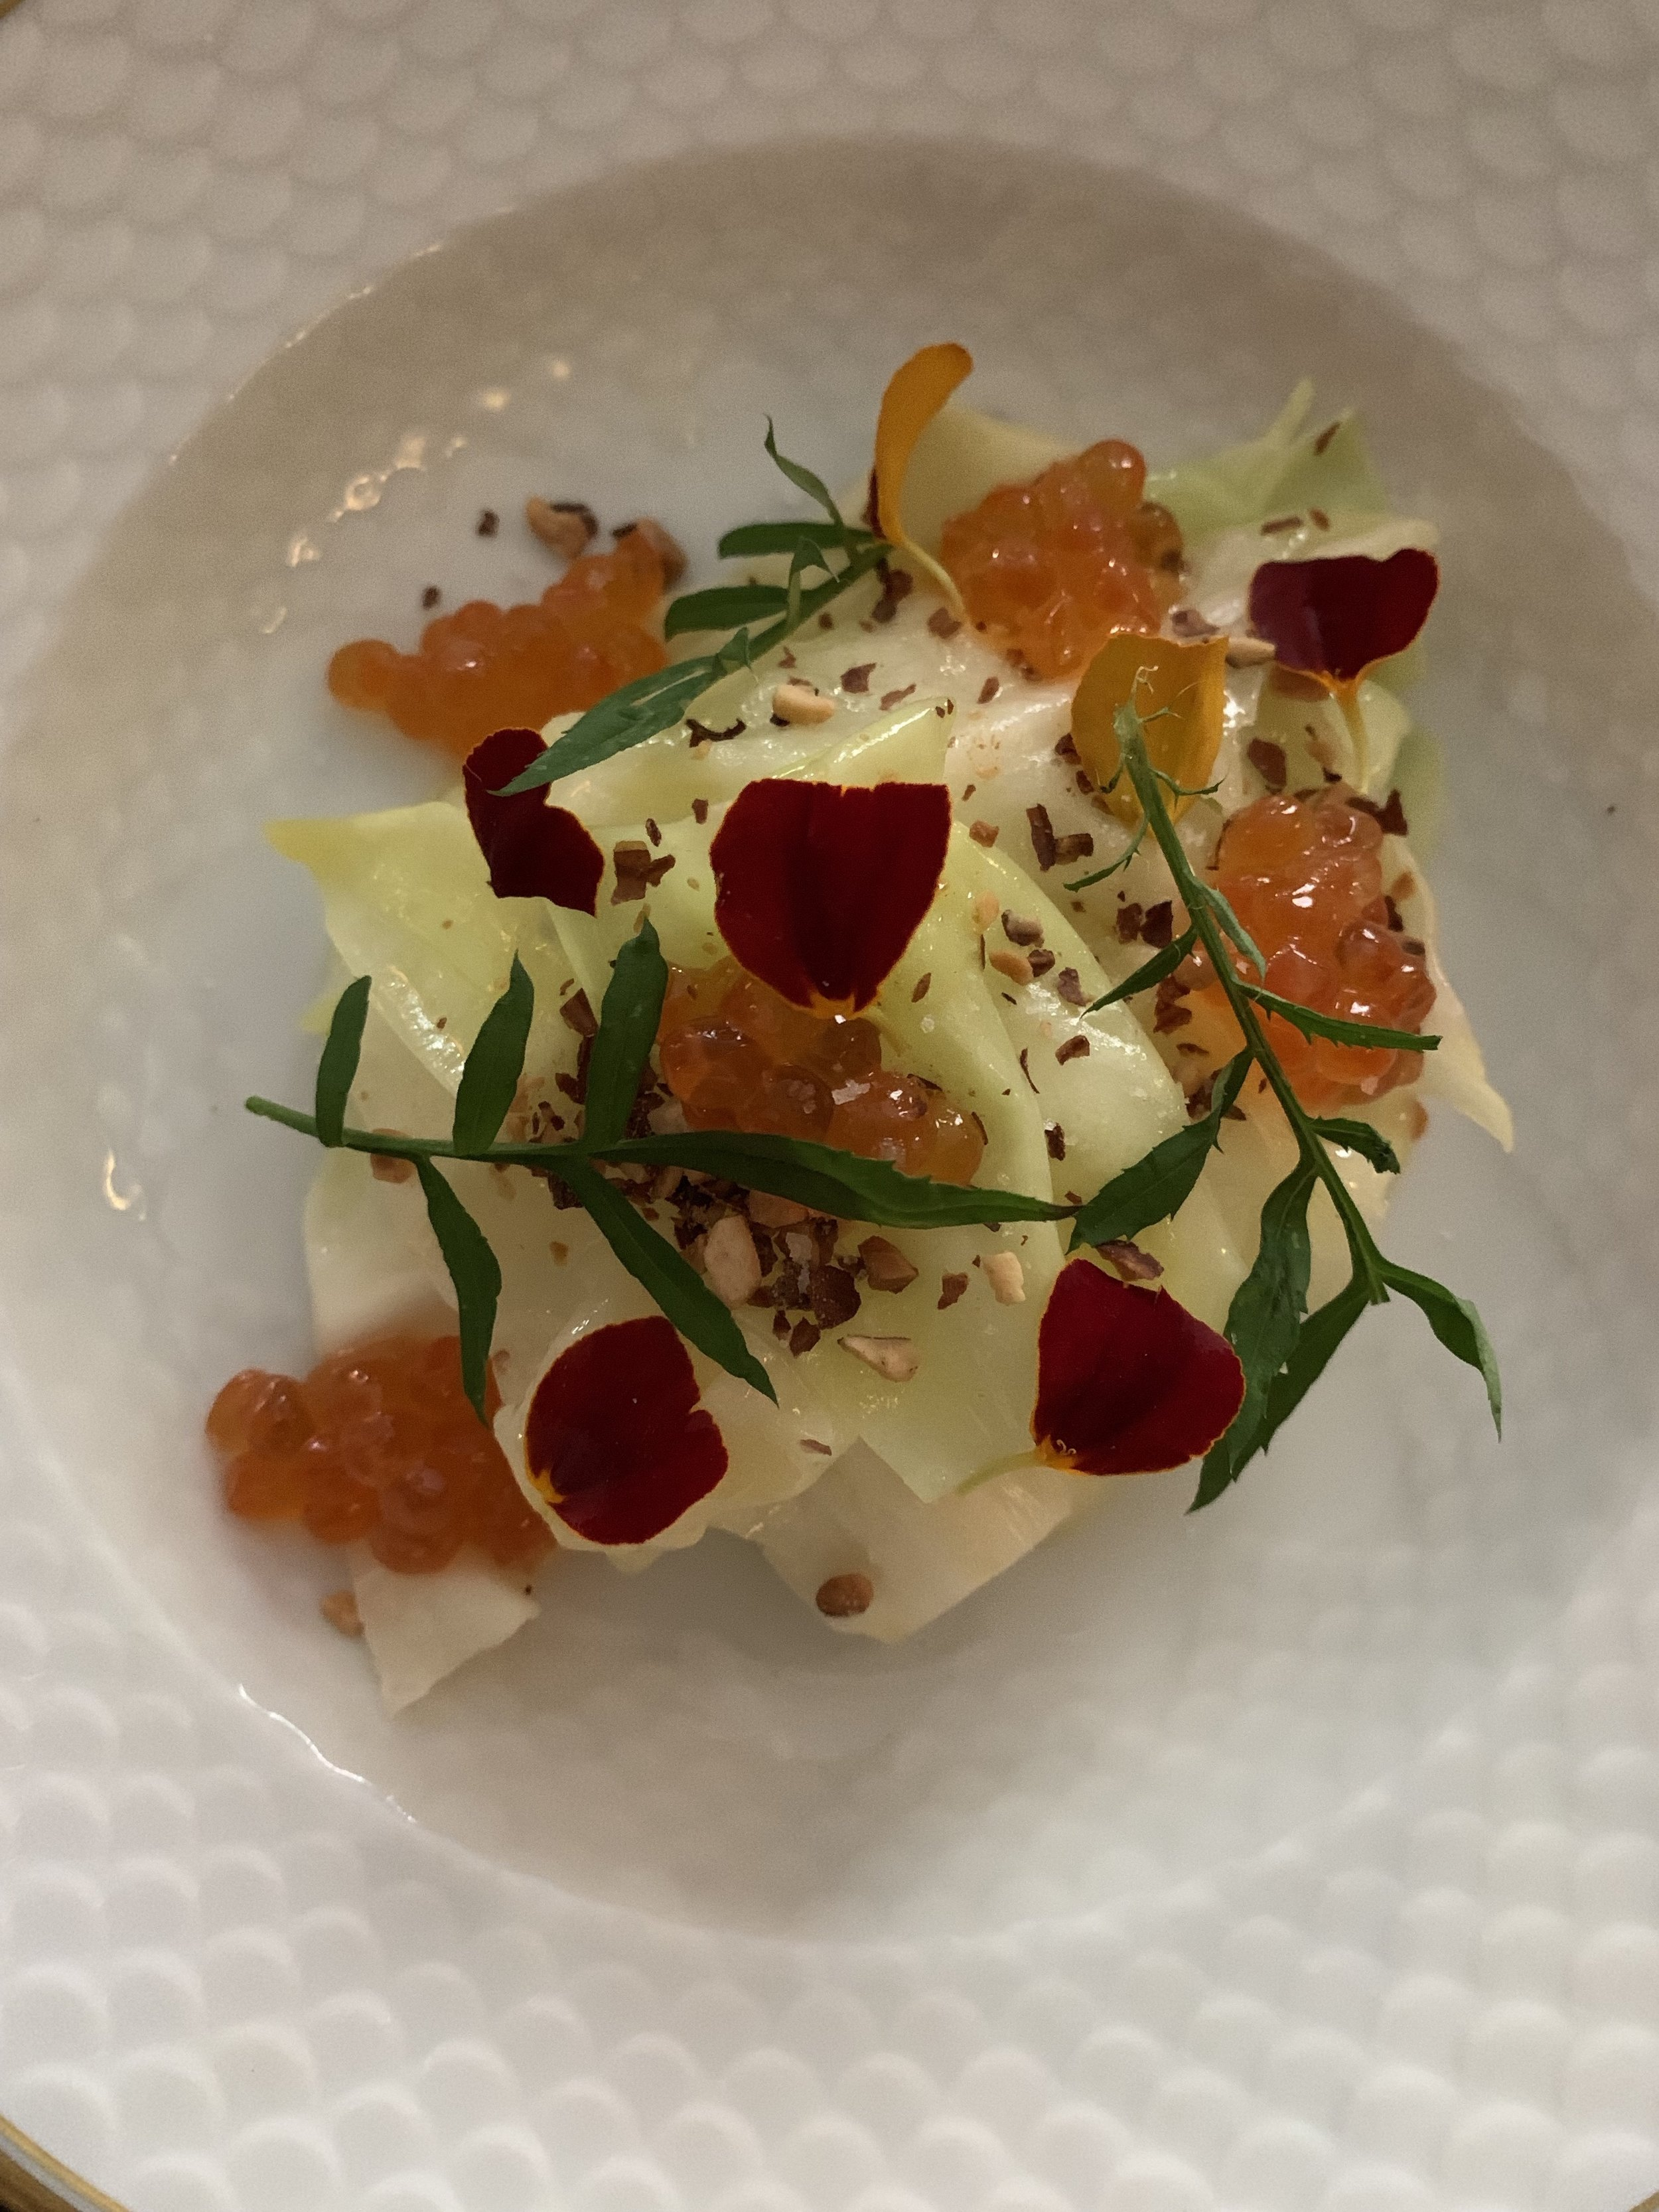 our first course: cabbage with salmon roe